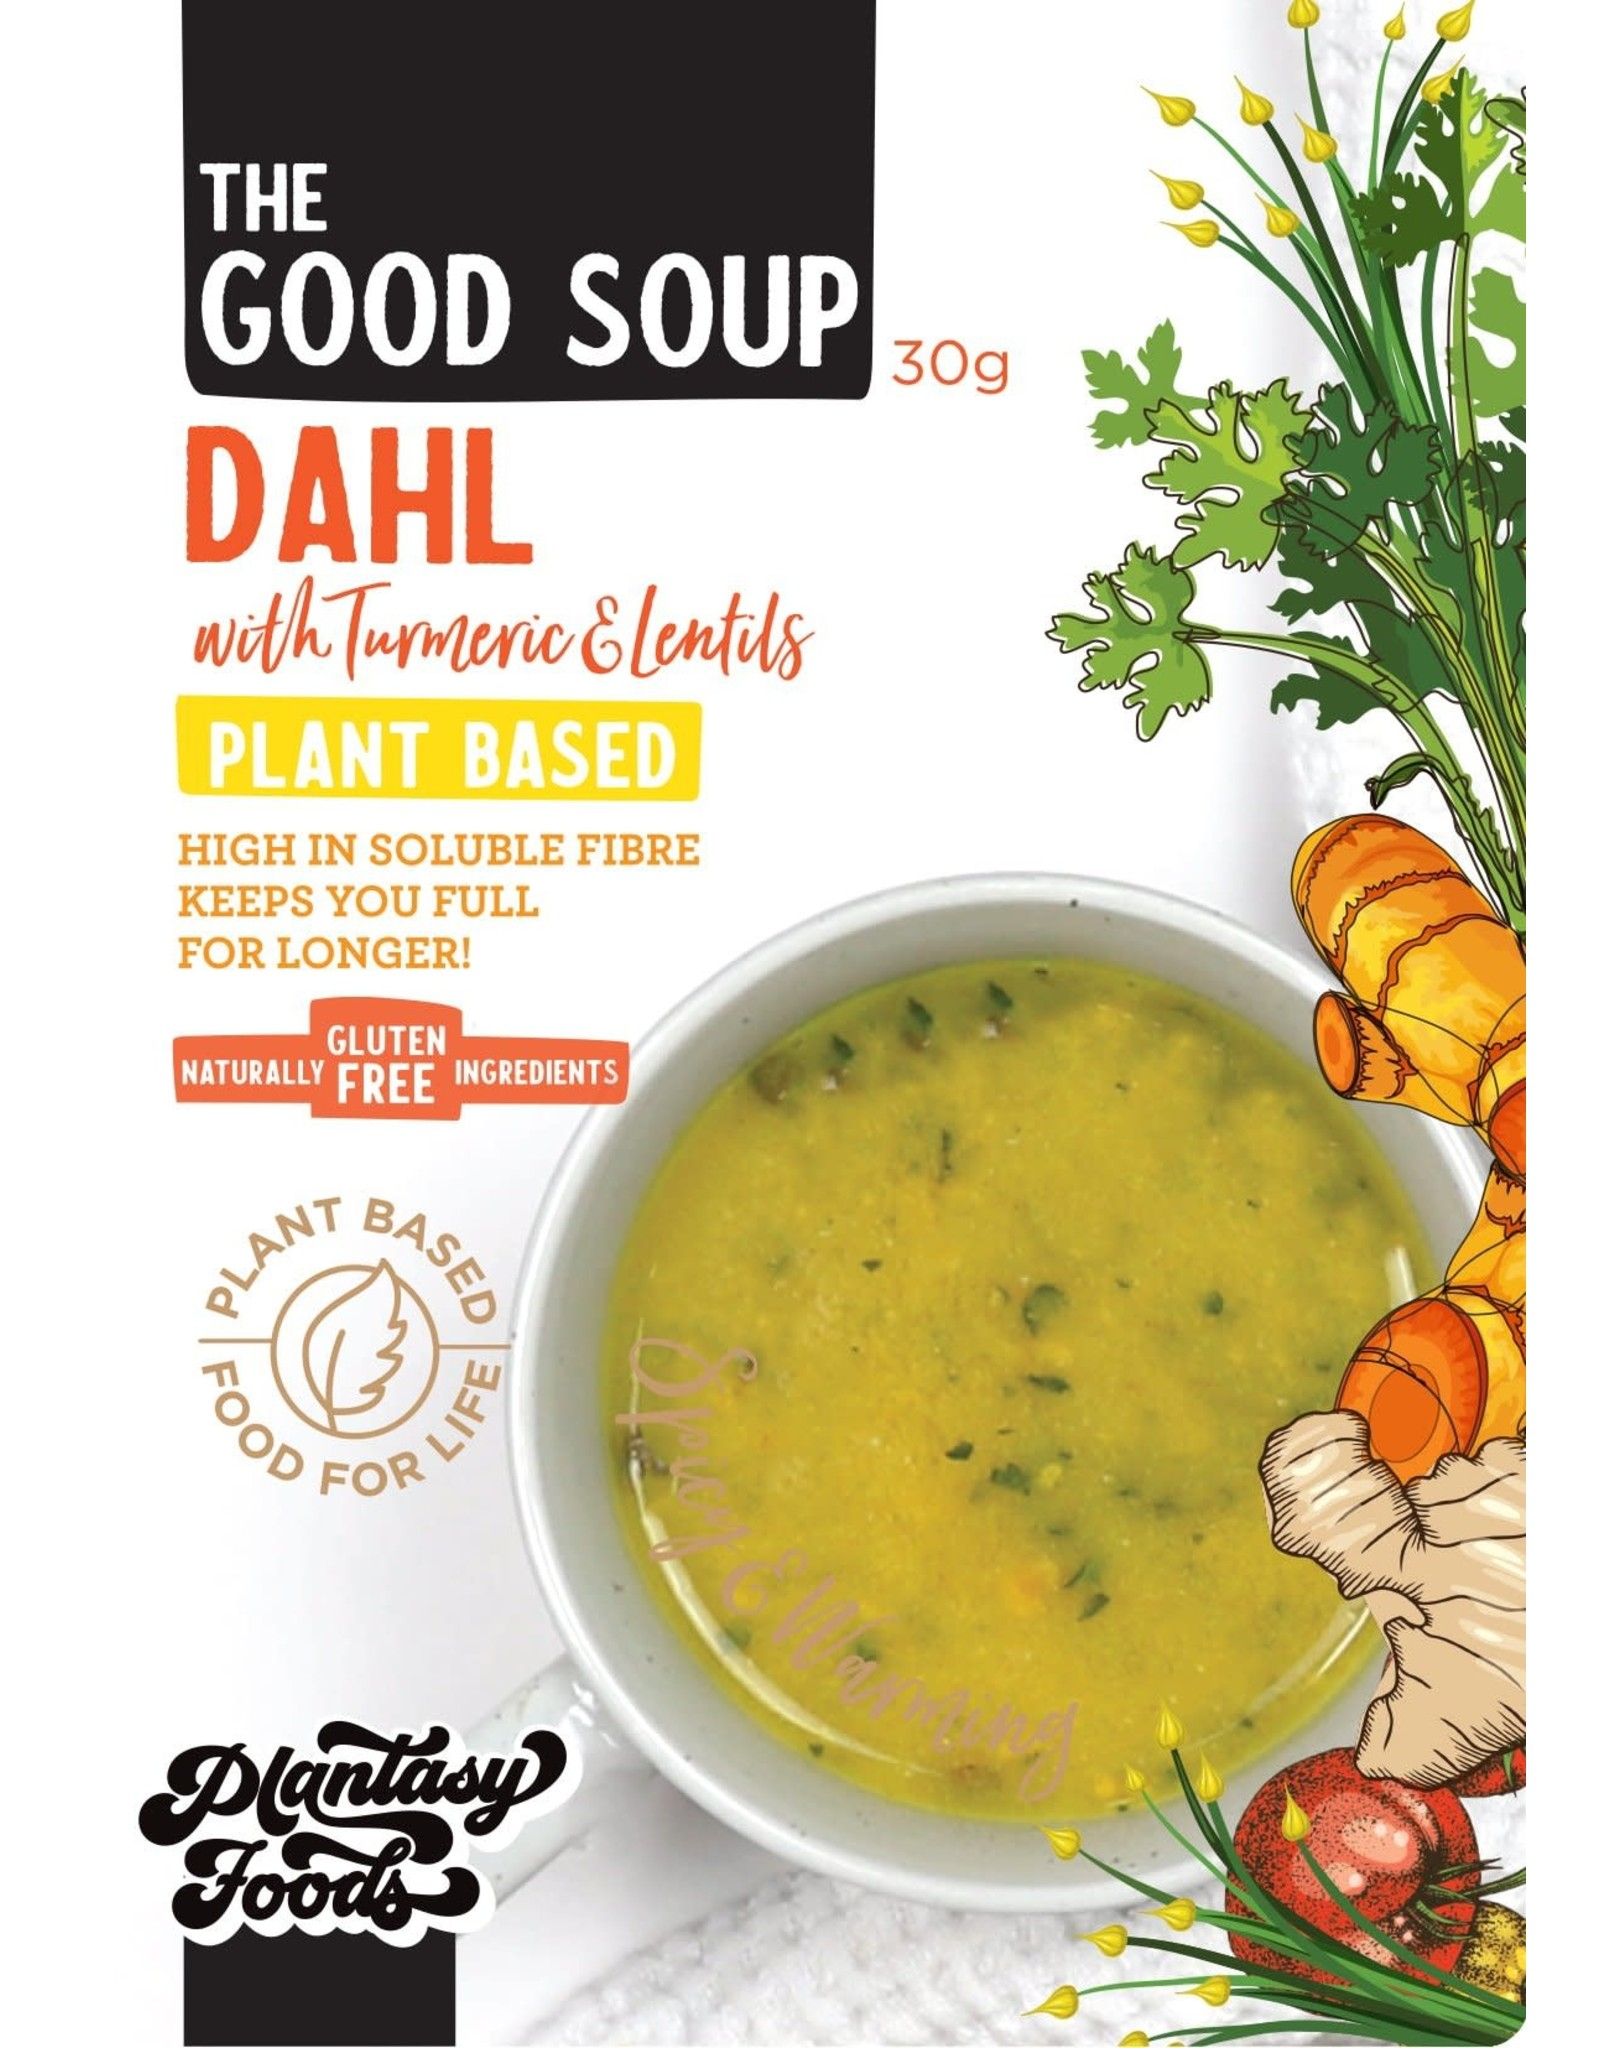 Plantasy Foods The Good Soup Dahl with Turmeric and Lentils 30g